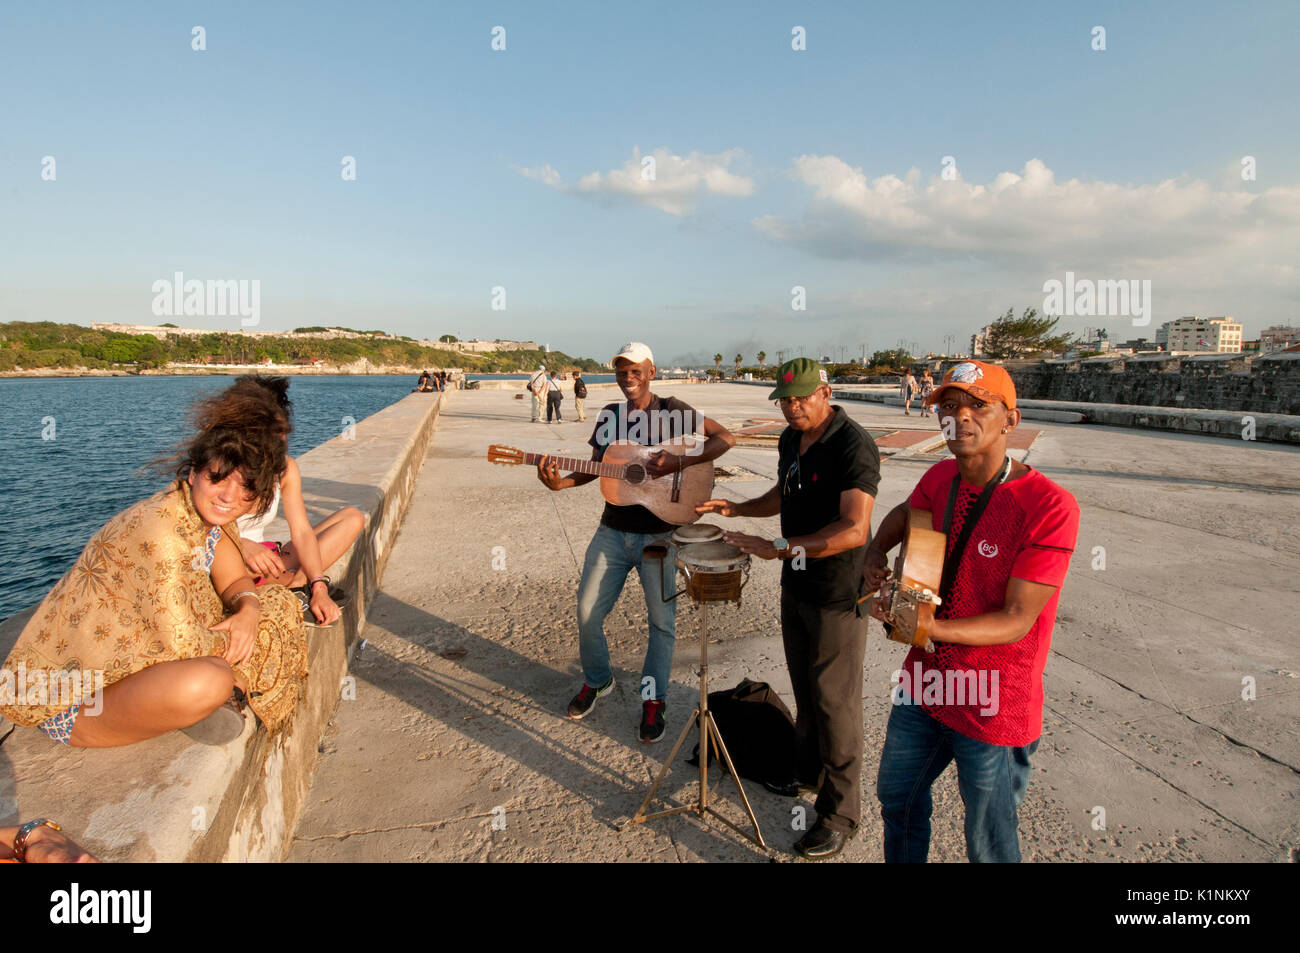 Musicians entertaining two women along the Malecon in Havana Cuba - Stock Image